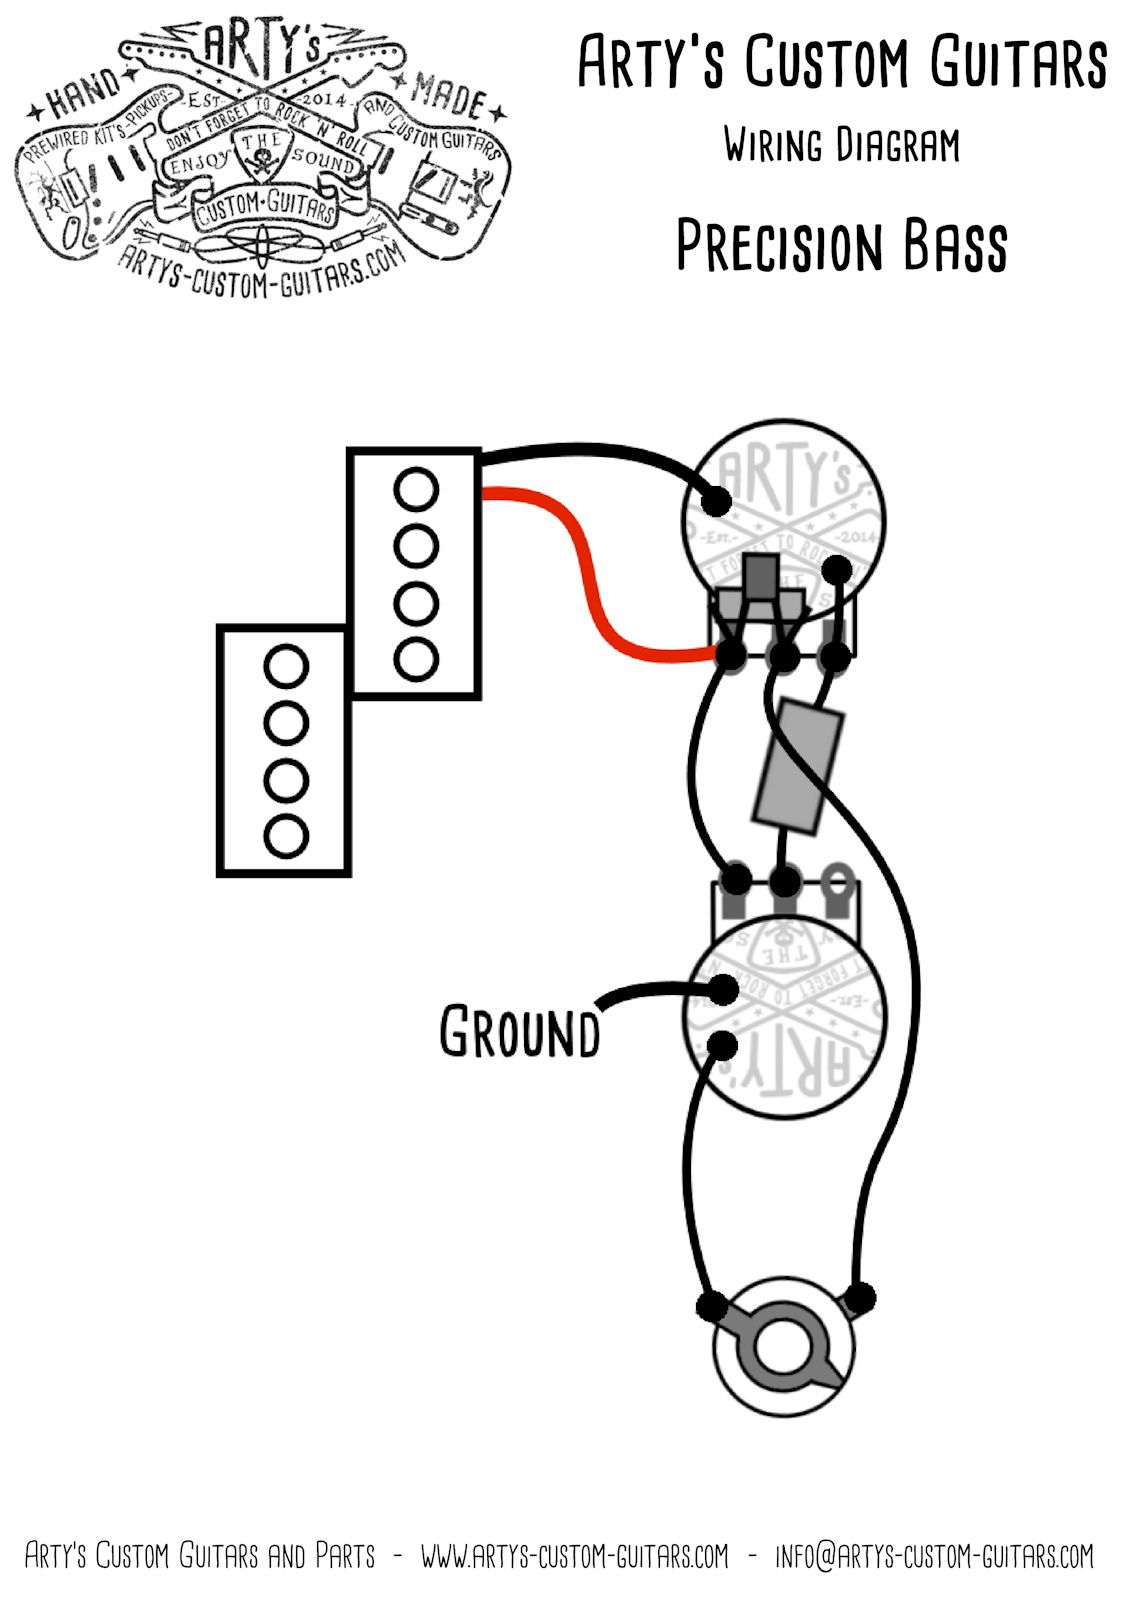 1959 fender precision b wiring diagram